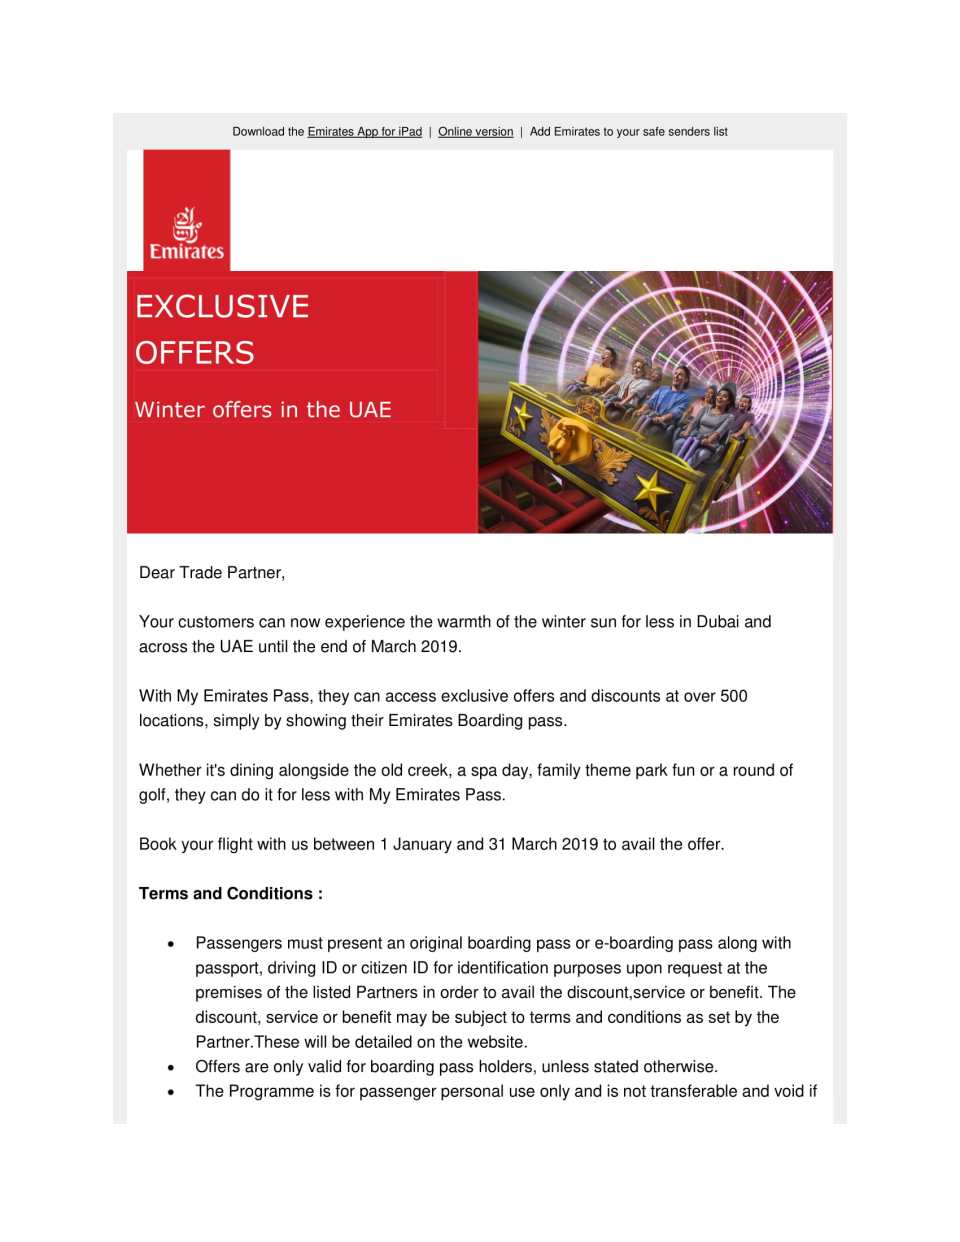 download the emirates app for ipad-1